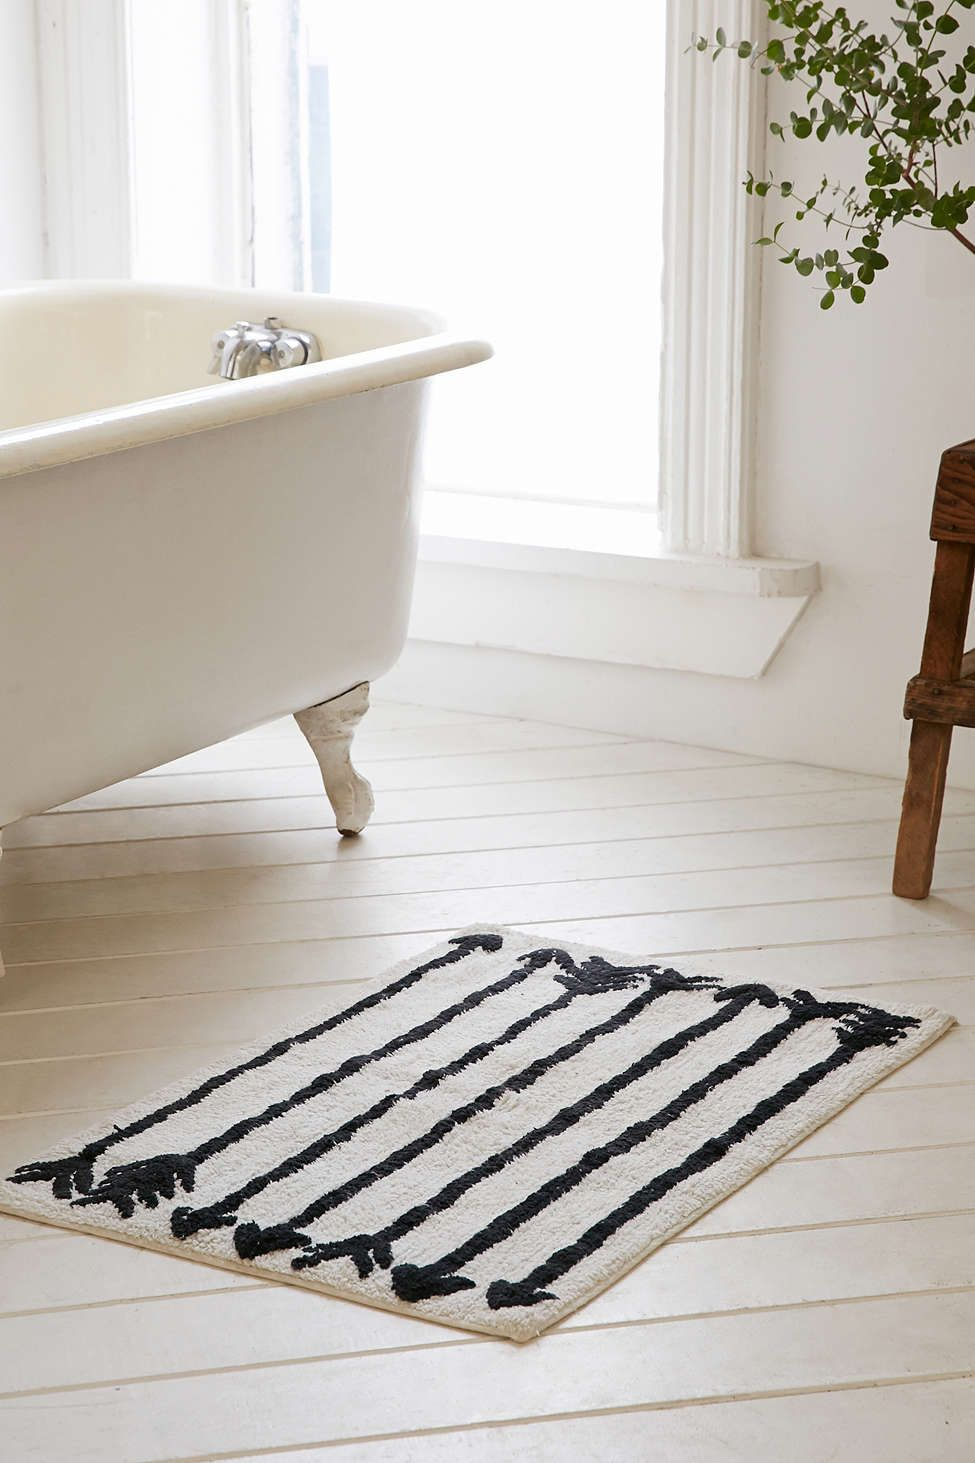 Locust Arrow Bath Mat Urban Outfitters For The Home - Beige bath mat for bathroom decorating ideas